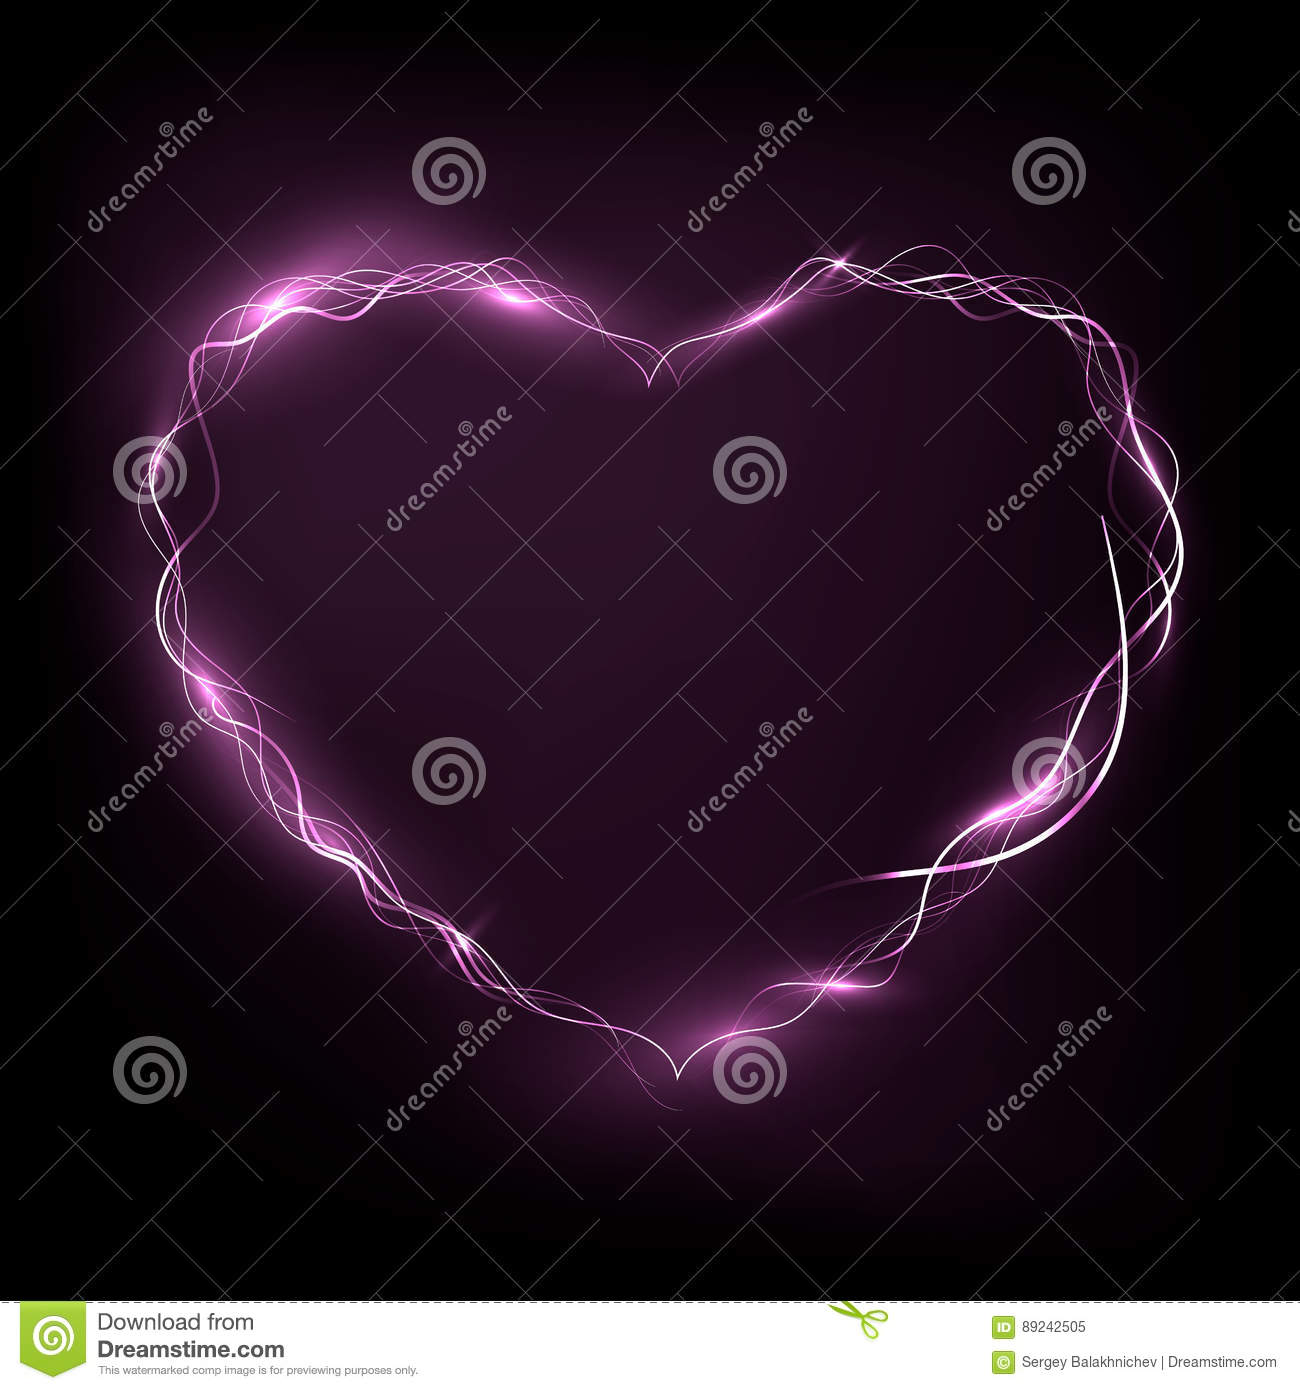 Nean heart glowing in the darkness